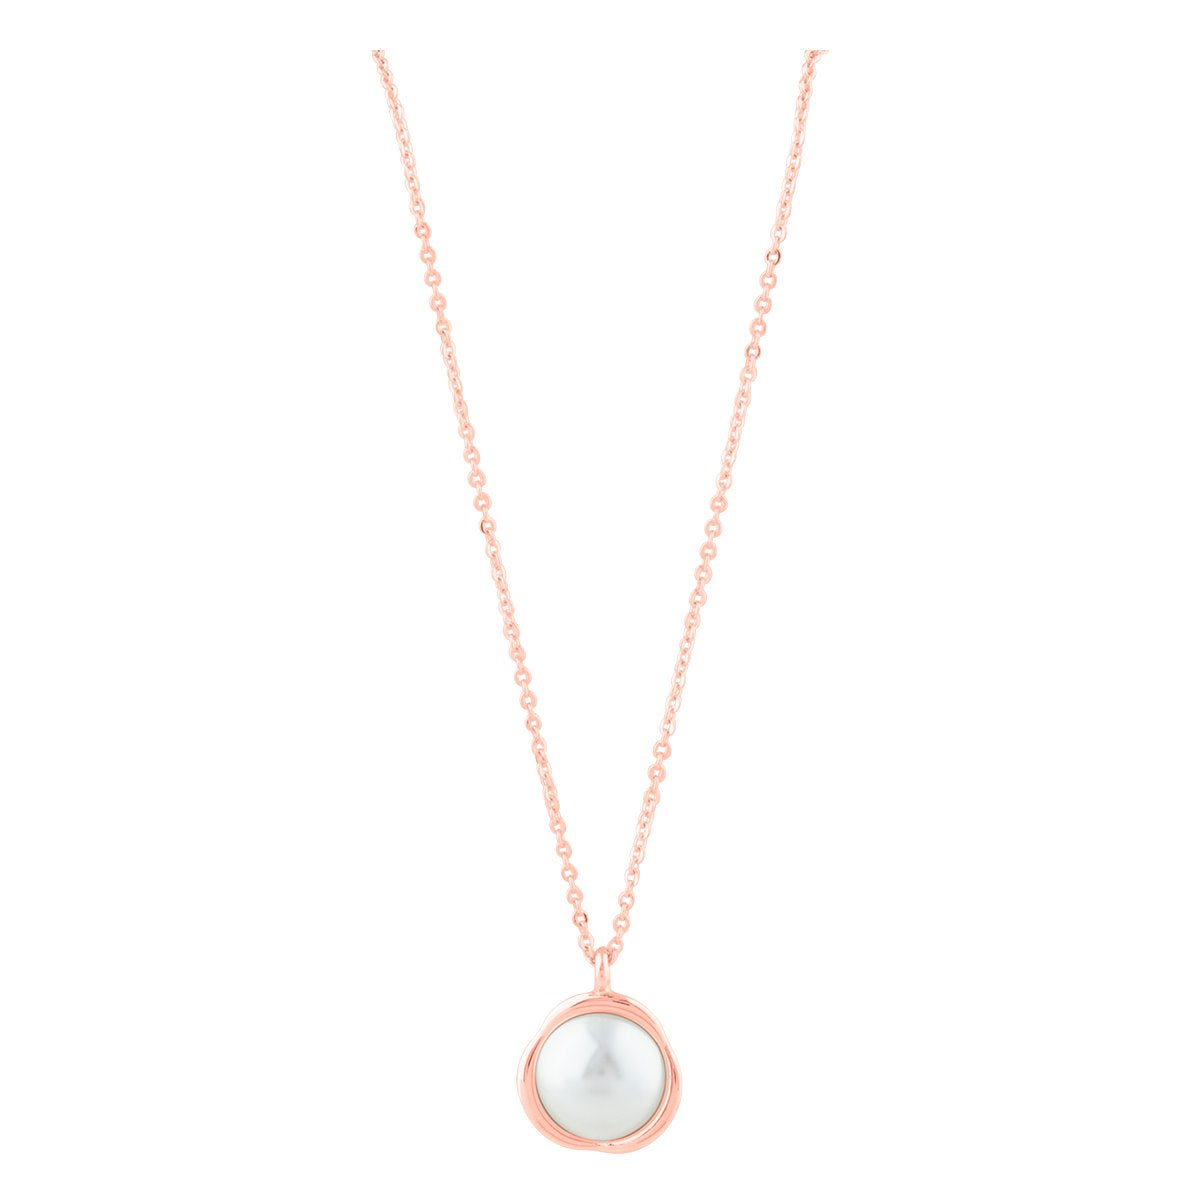 AUDREY NECKLACE ROSE GOLD